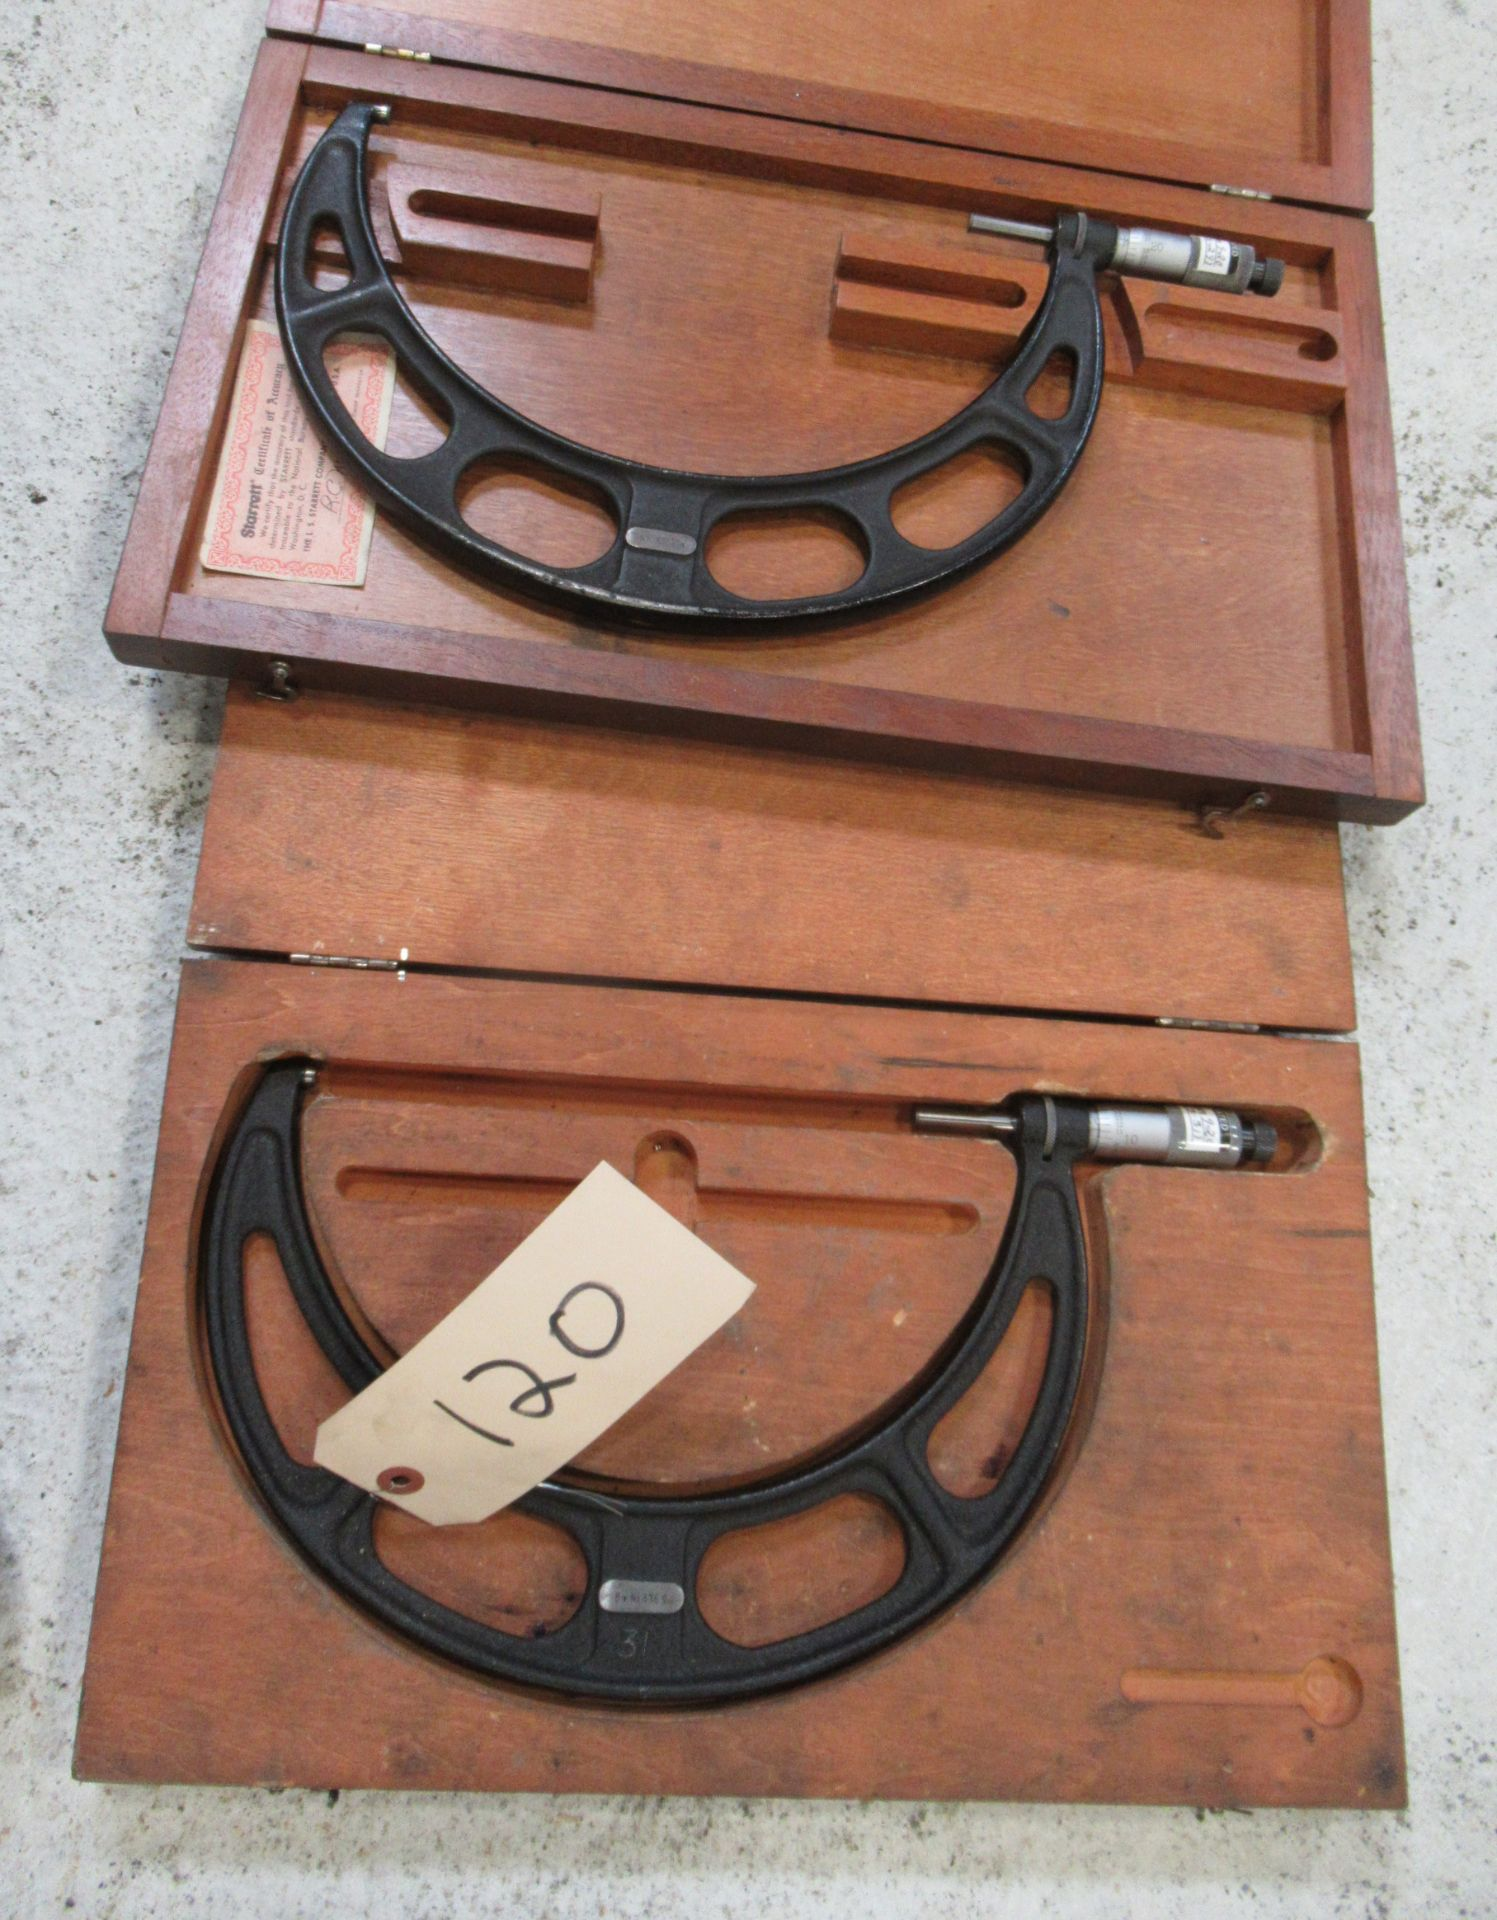 (2) ASSORTED MICROMETERS